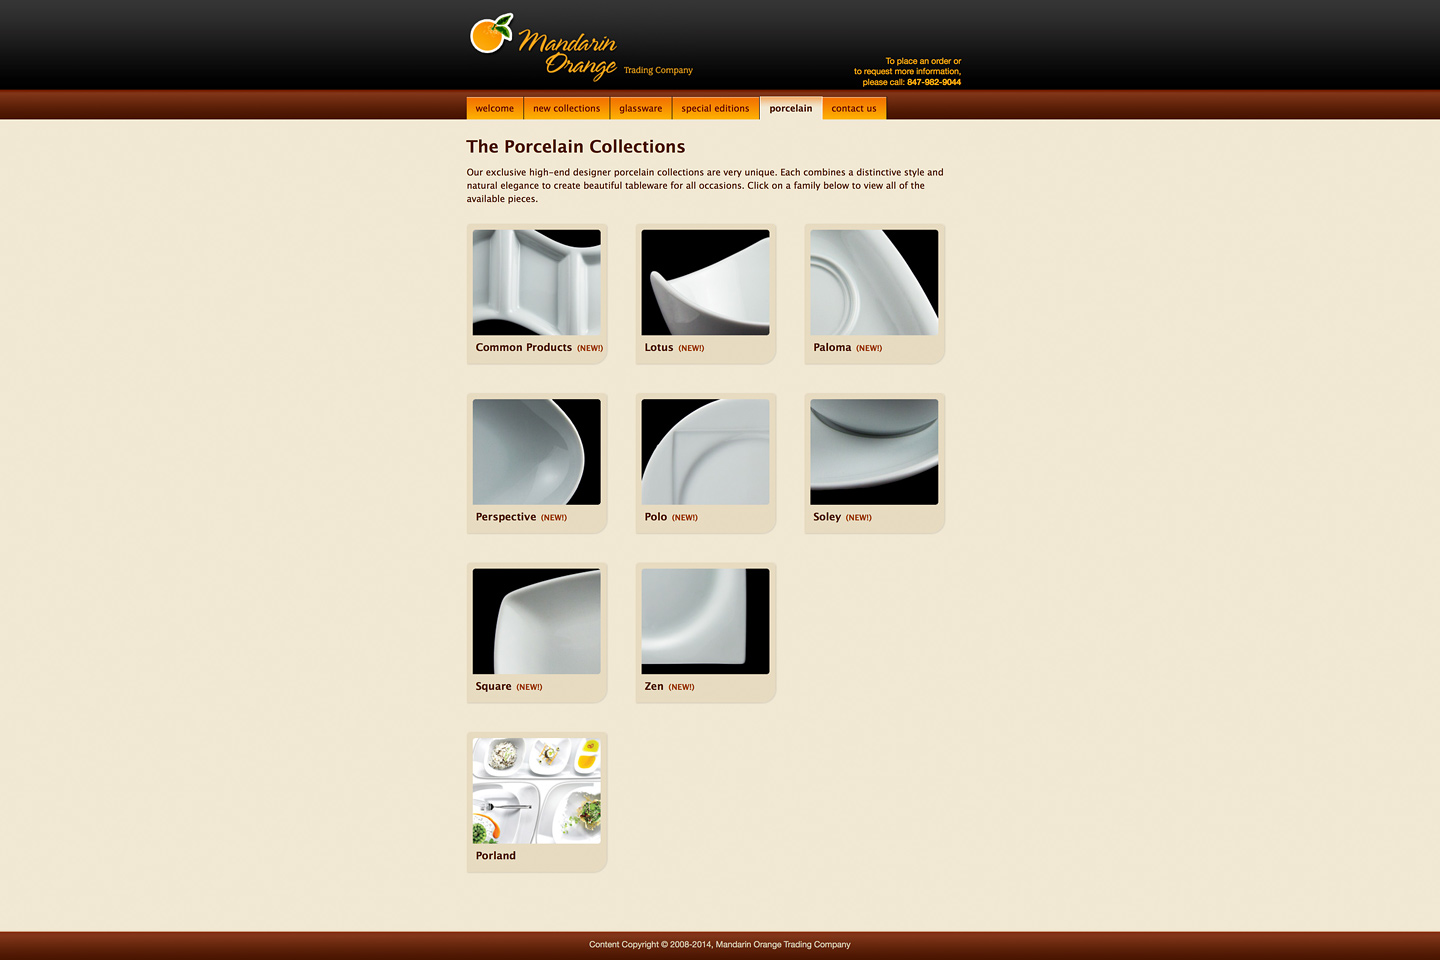 a screen capture of the mandarin orange trading company porcelain collections landing page, featuring thumbnails of various porcelain patterns